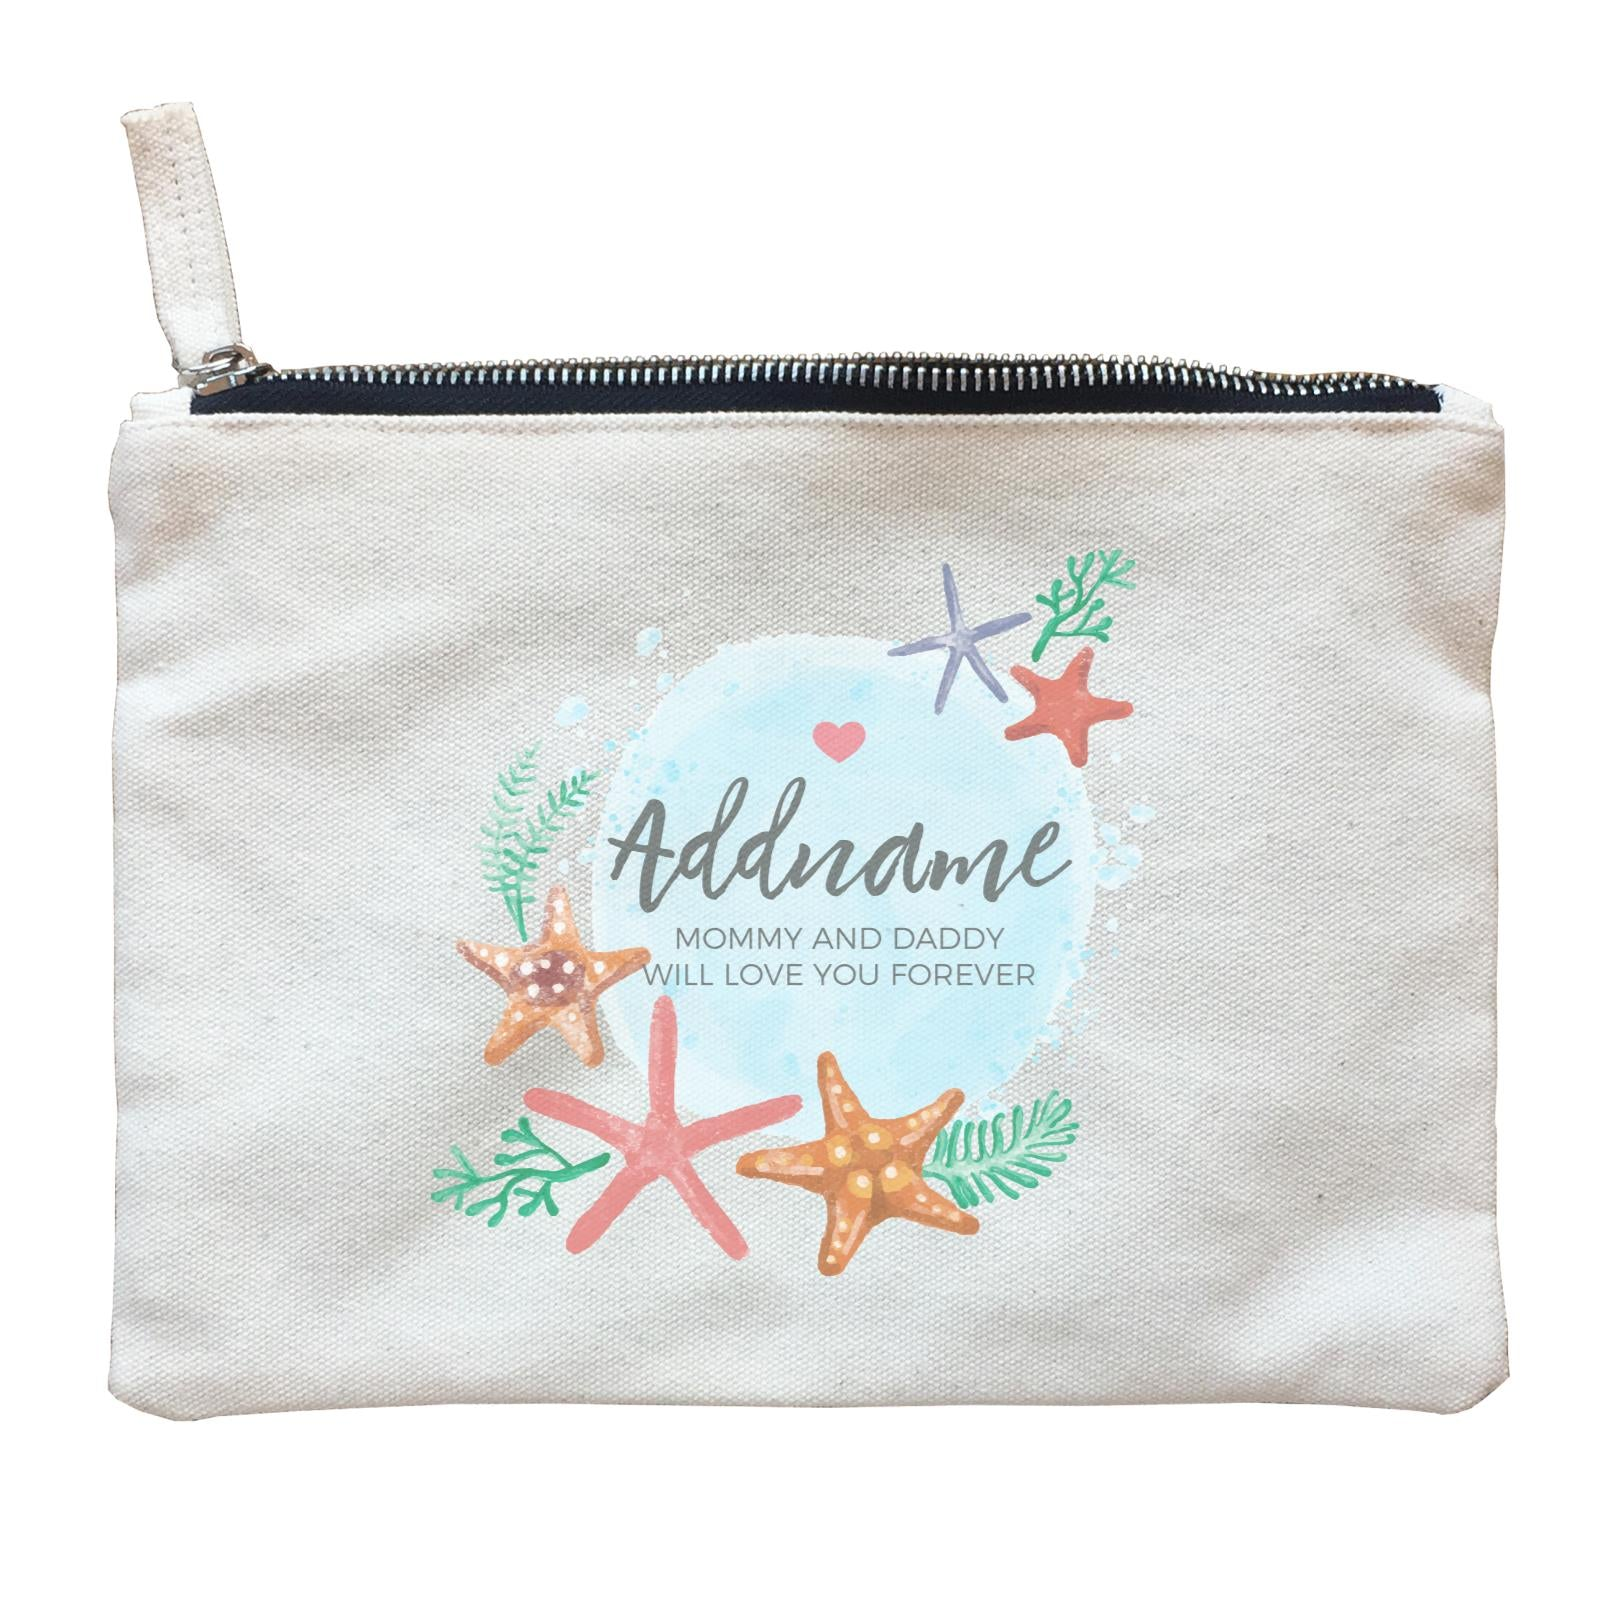 Watercolour Starfish and Coral Elements Personalizable with Name and Text Zipper Pouch